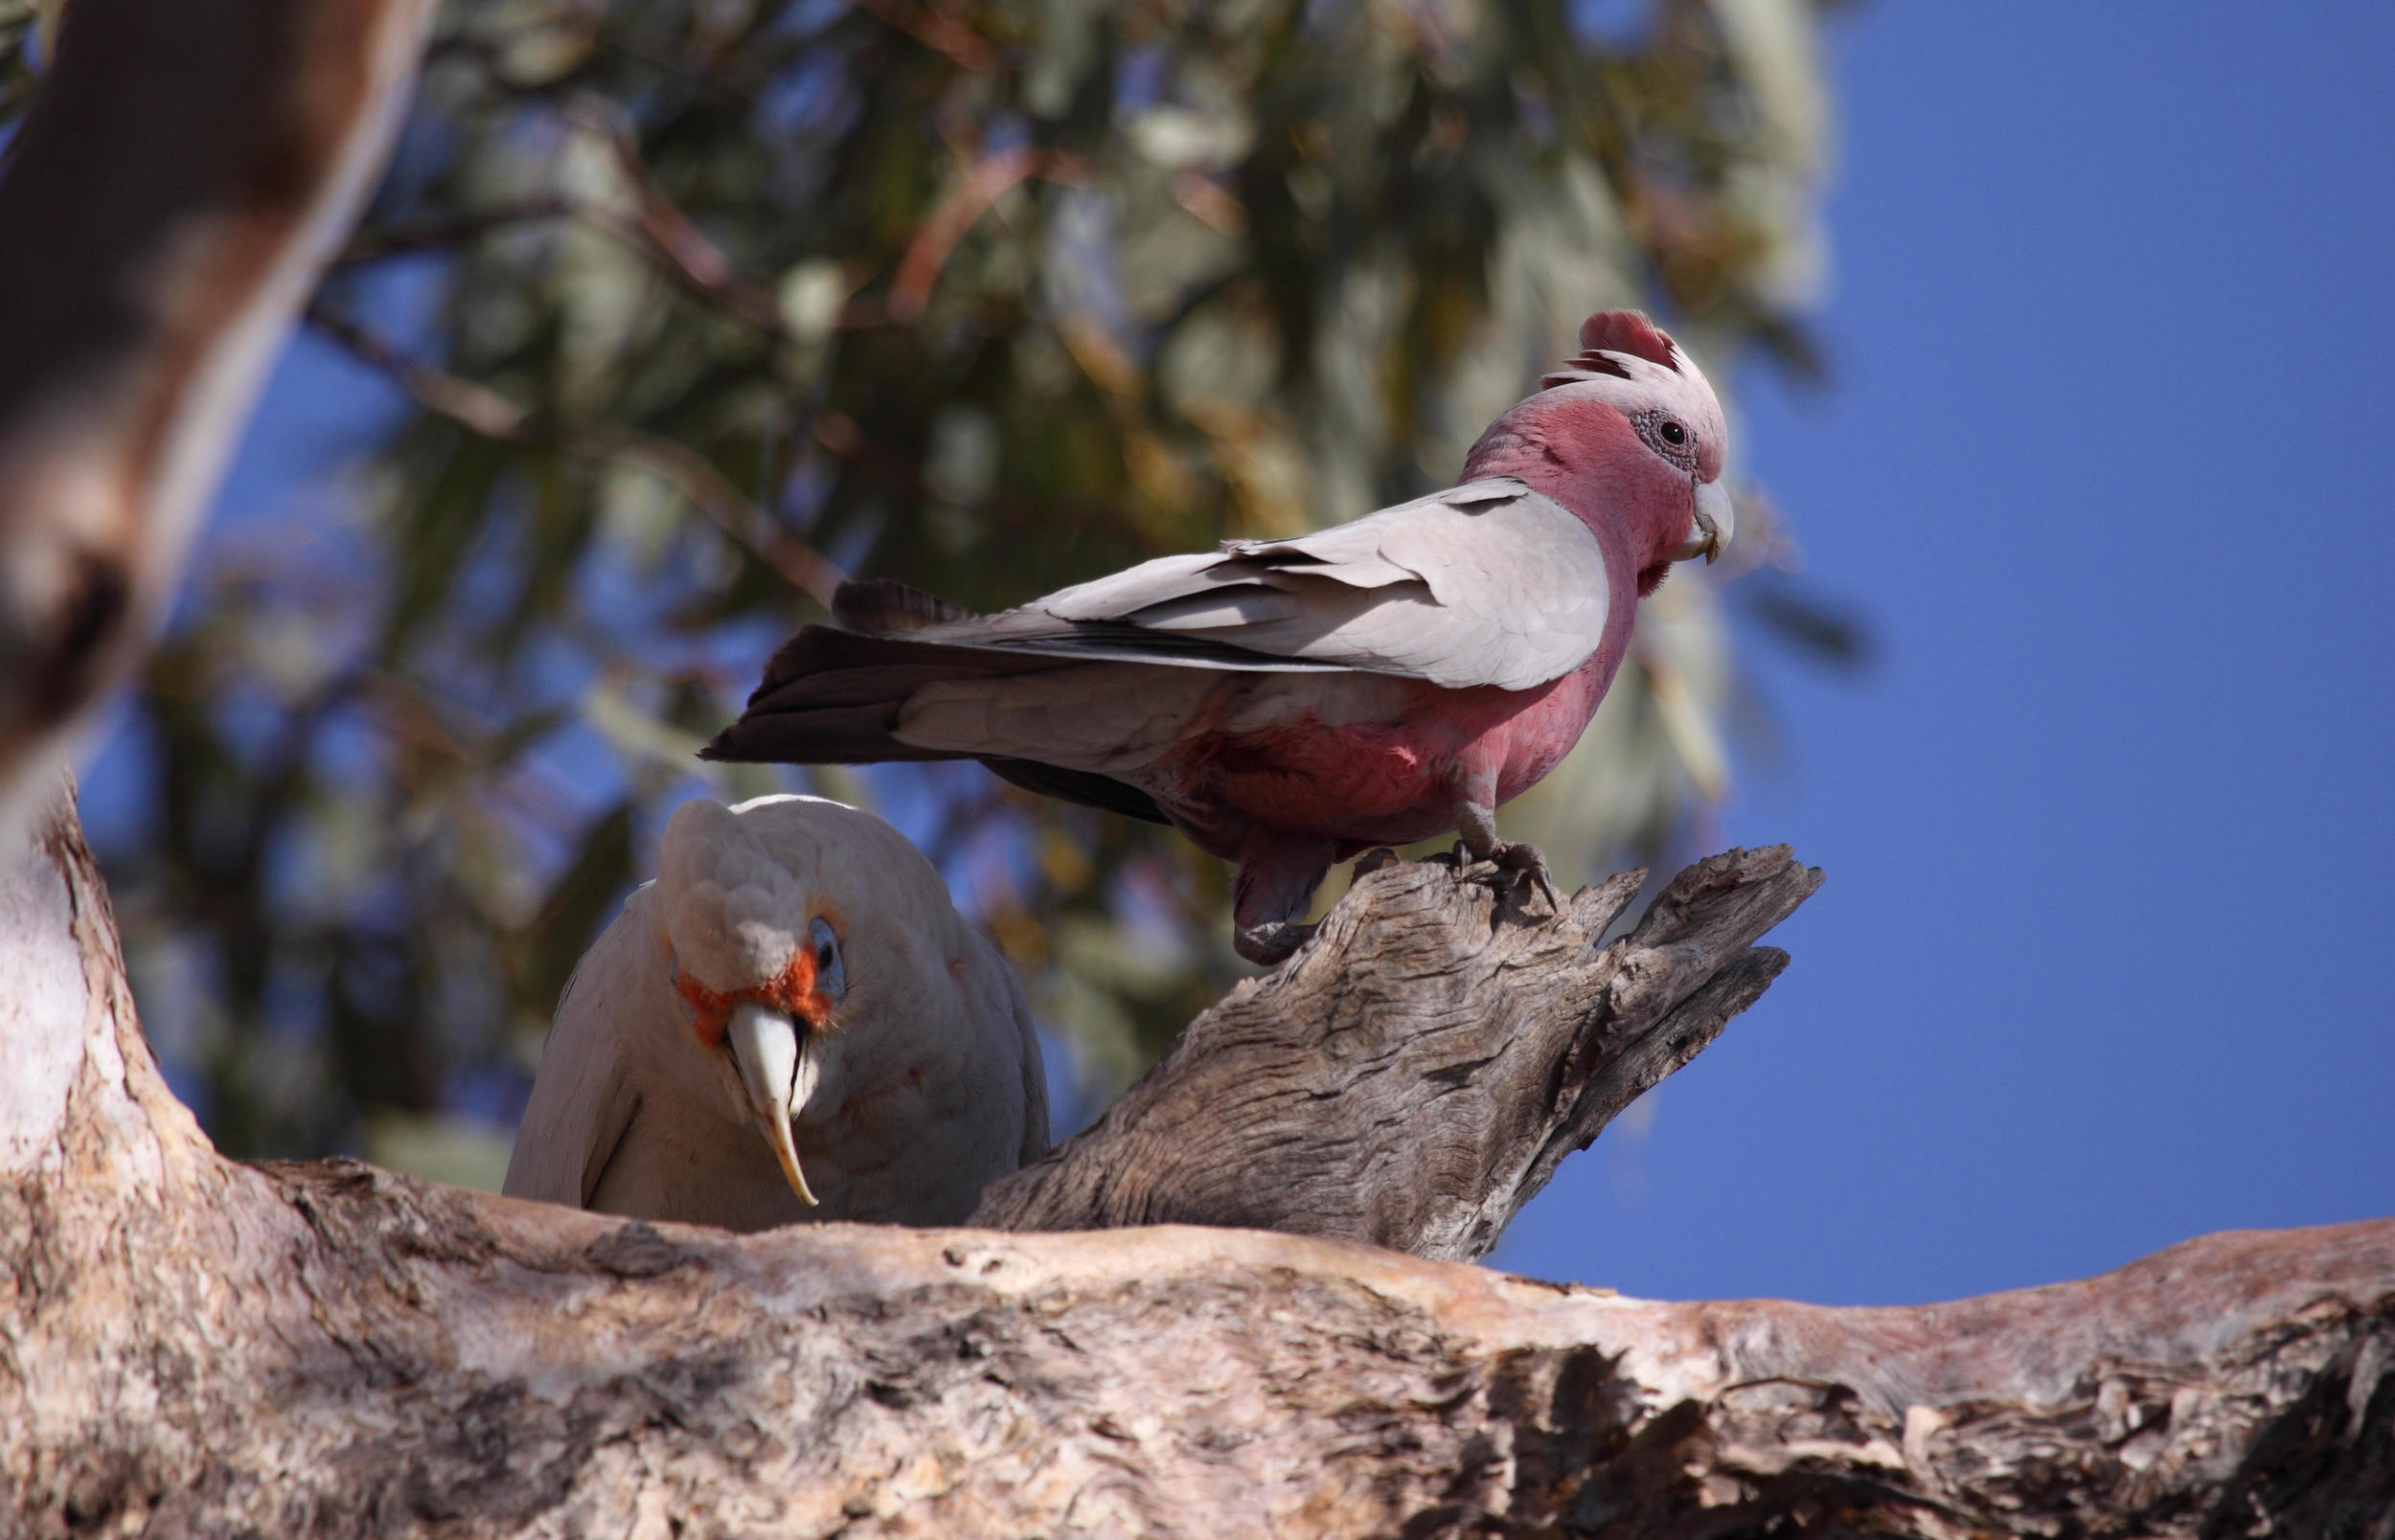 Flashback to Alice Springs: a Long-billed Corella and a Galah as unconventional homemakers.